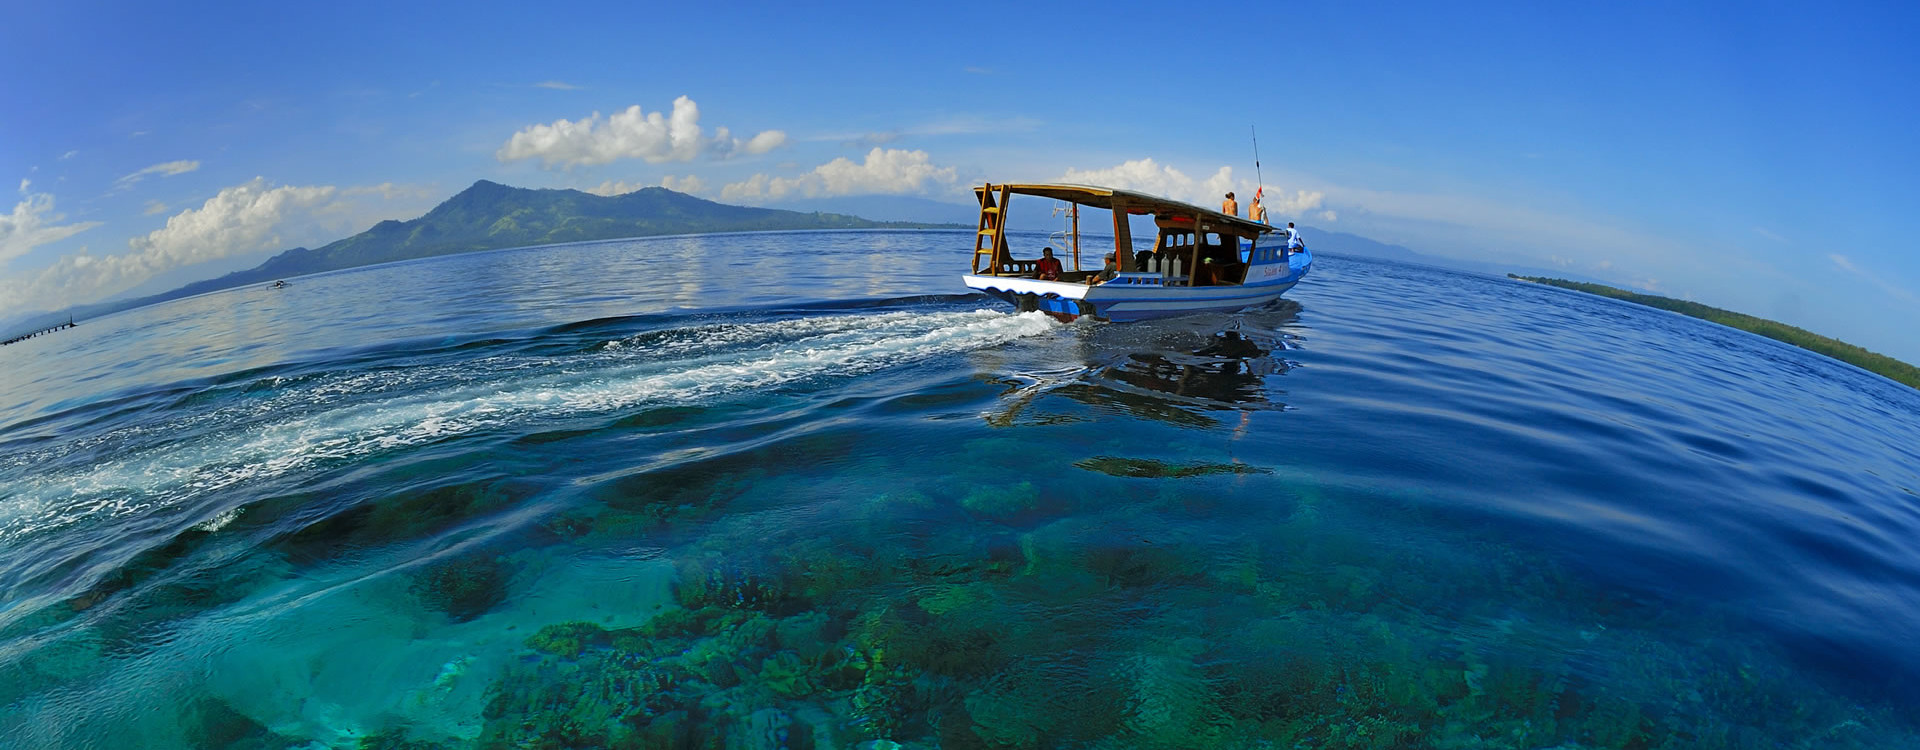 Discover the Bunaken Marine Park, a global center of biodiversity